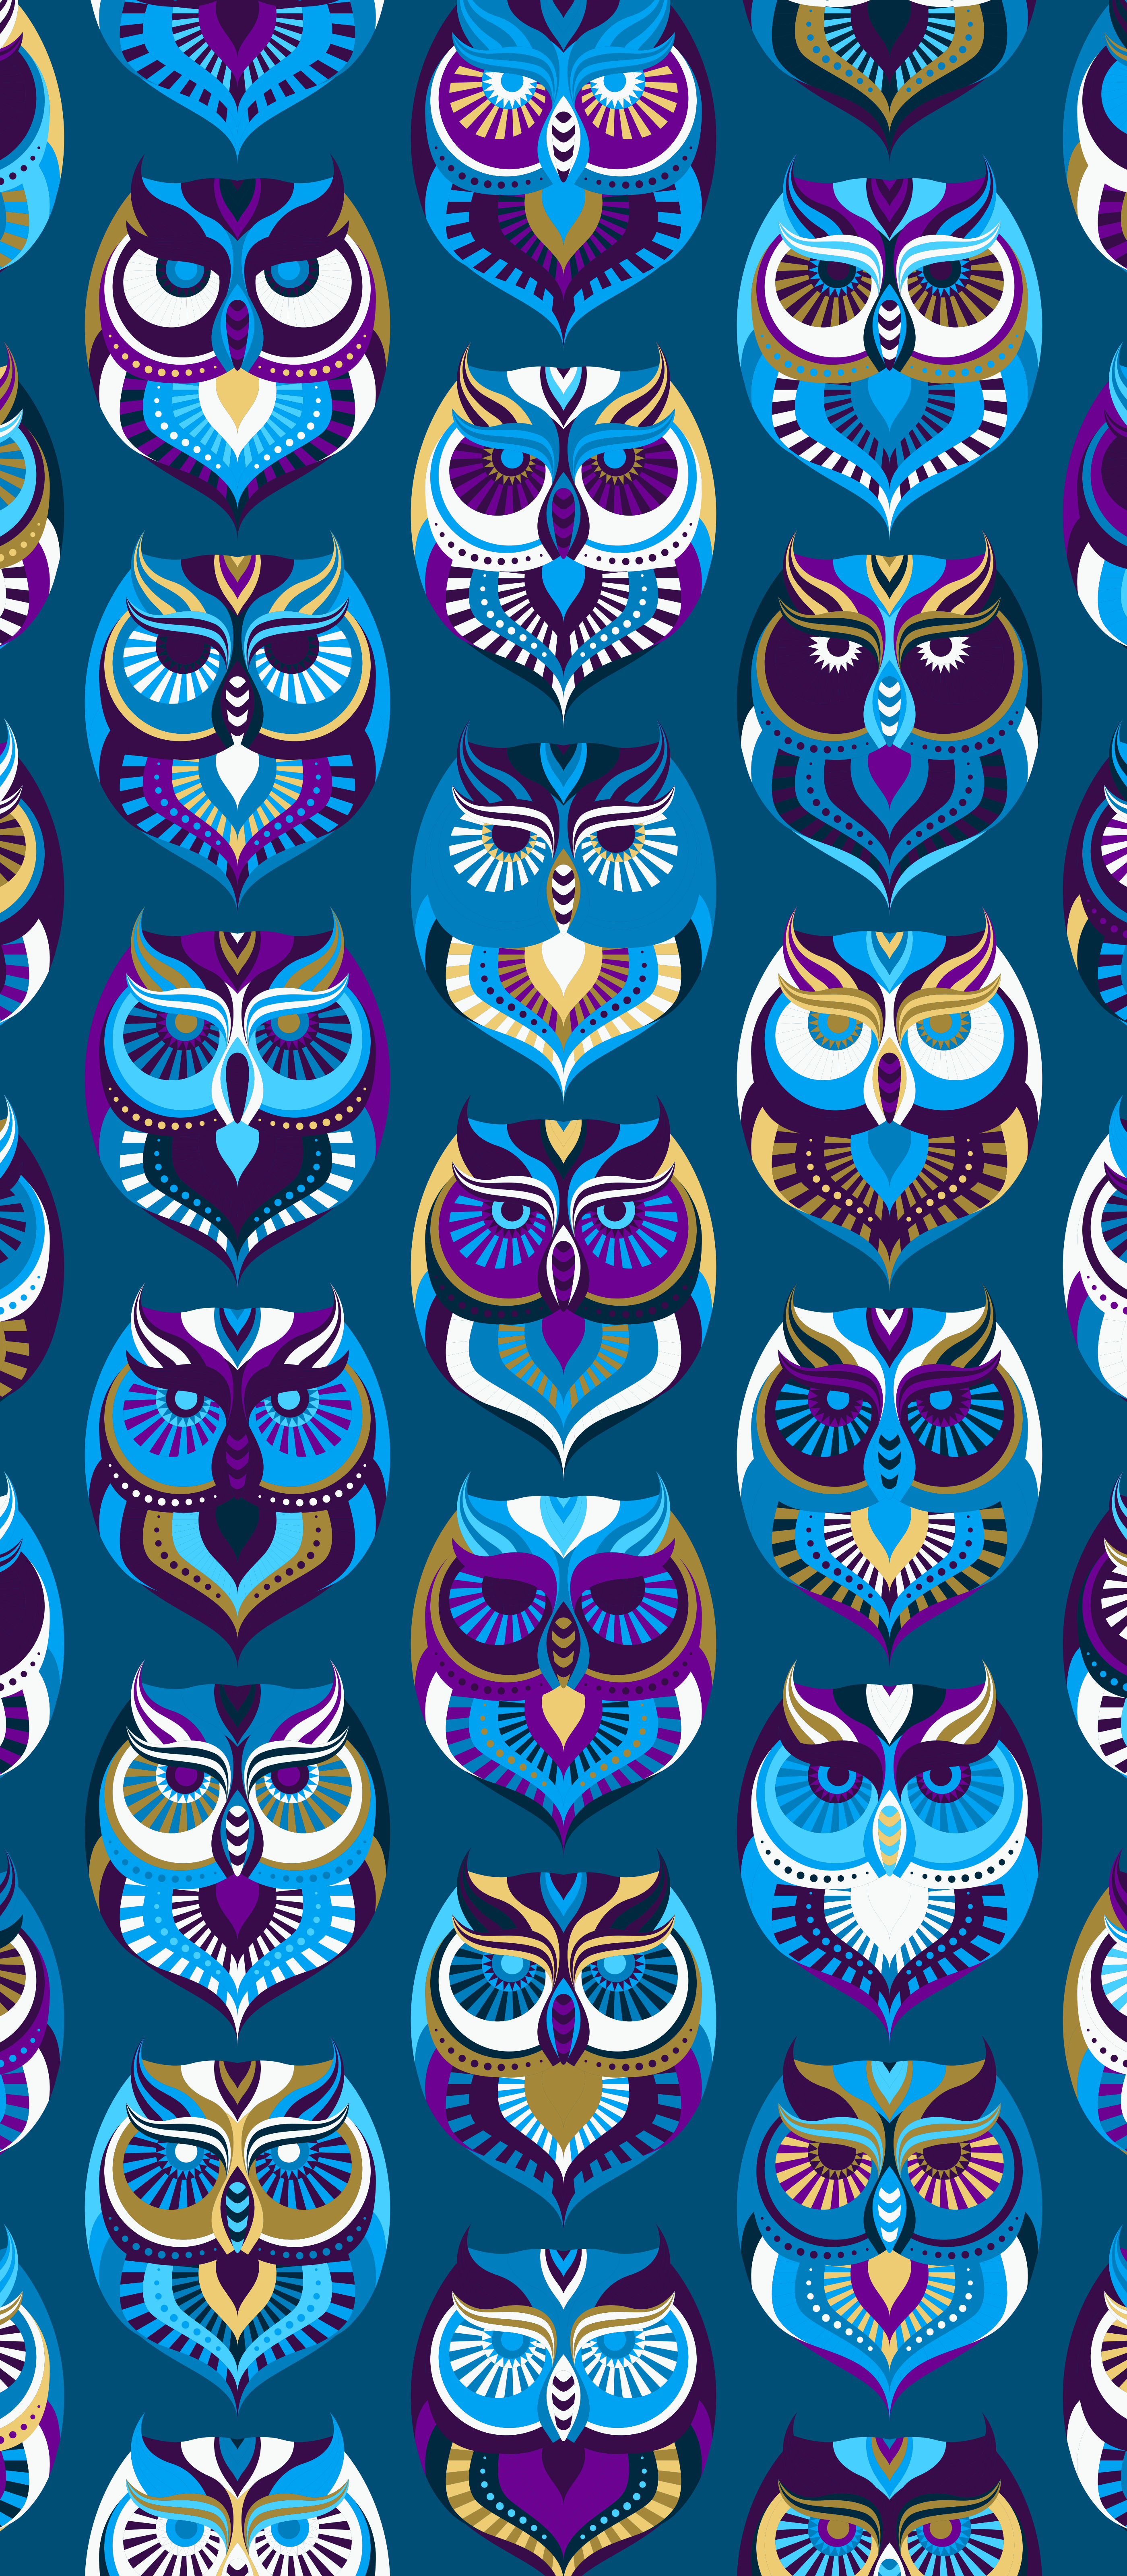 2800x6400 Pin by Natalie on Cute wallpapers | Owl wallpaper, Pattern wallpaper ...